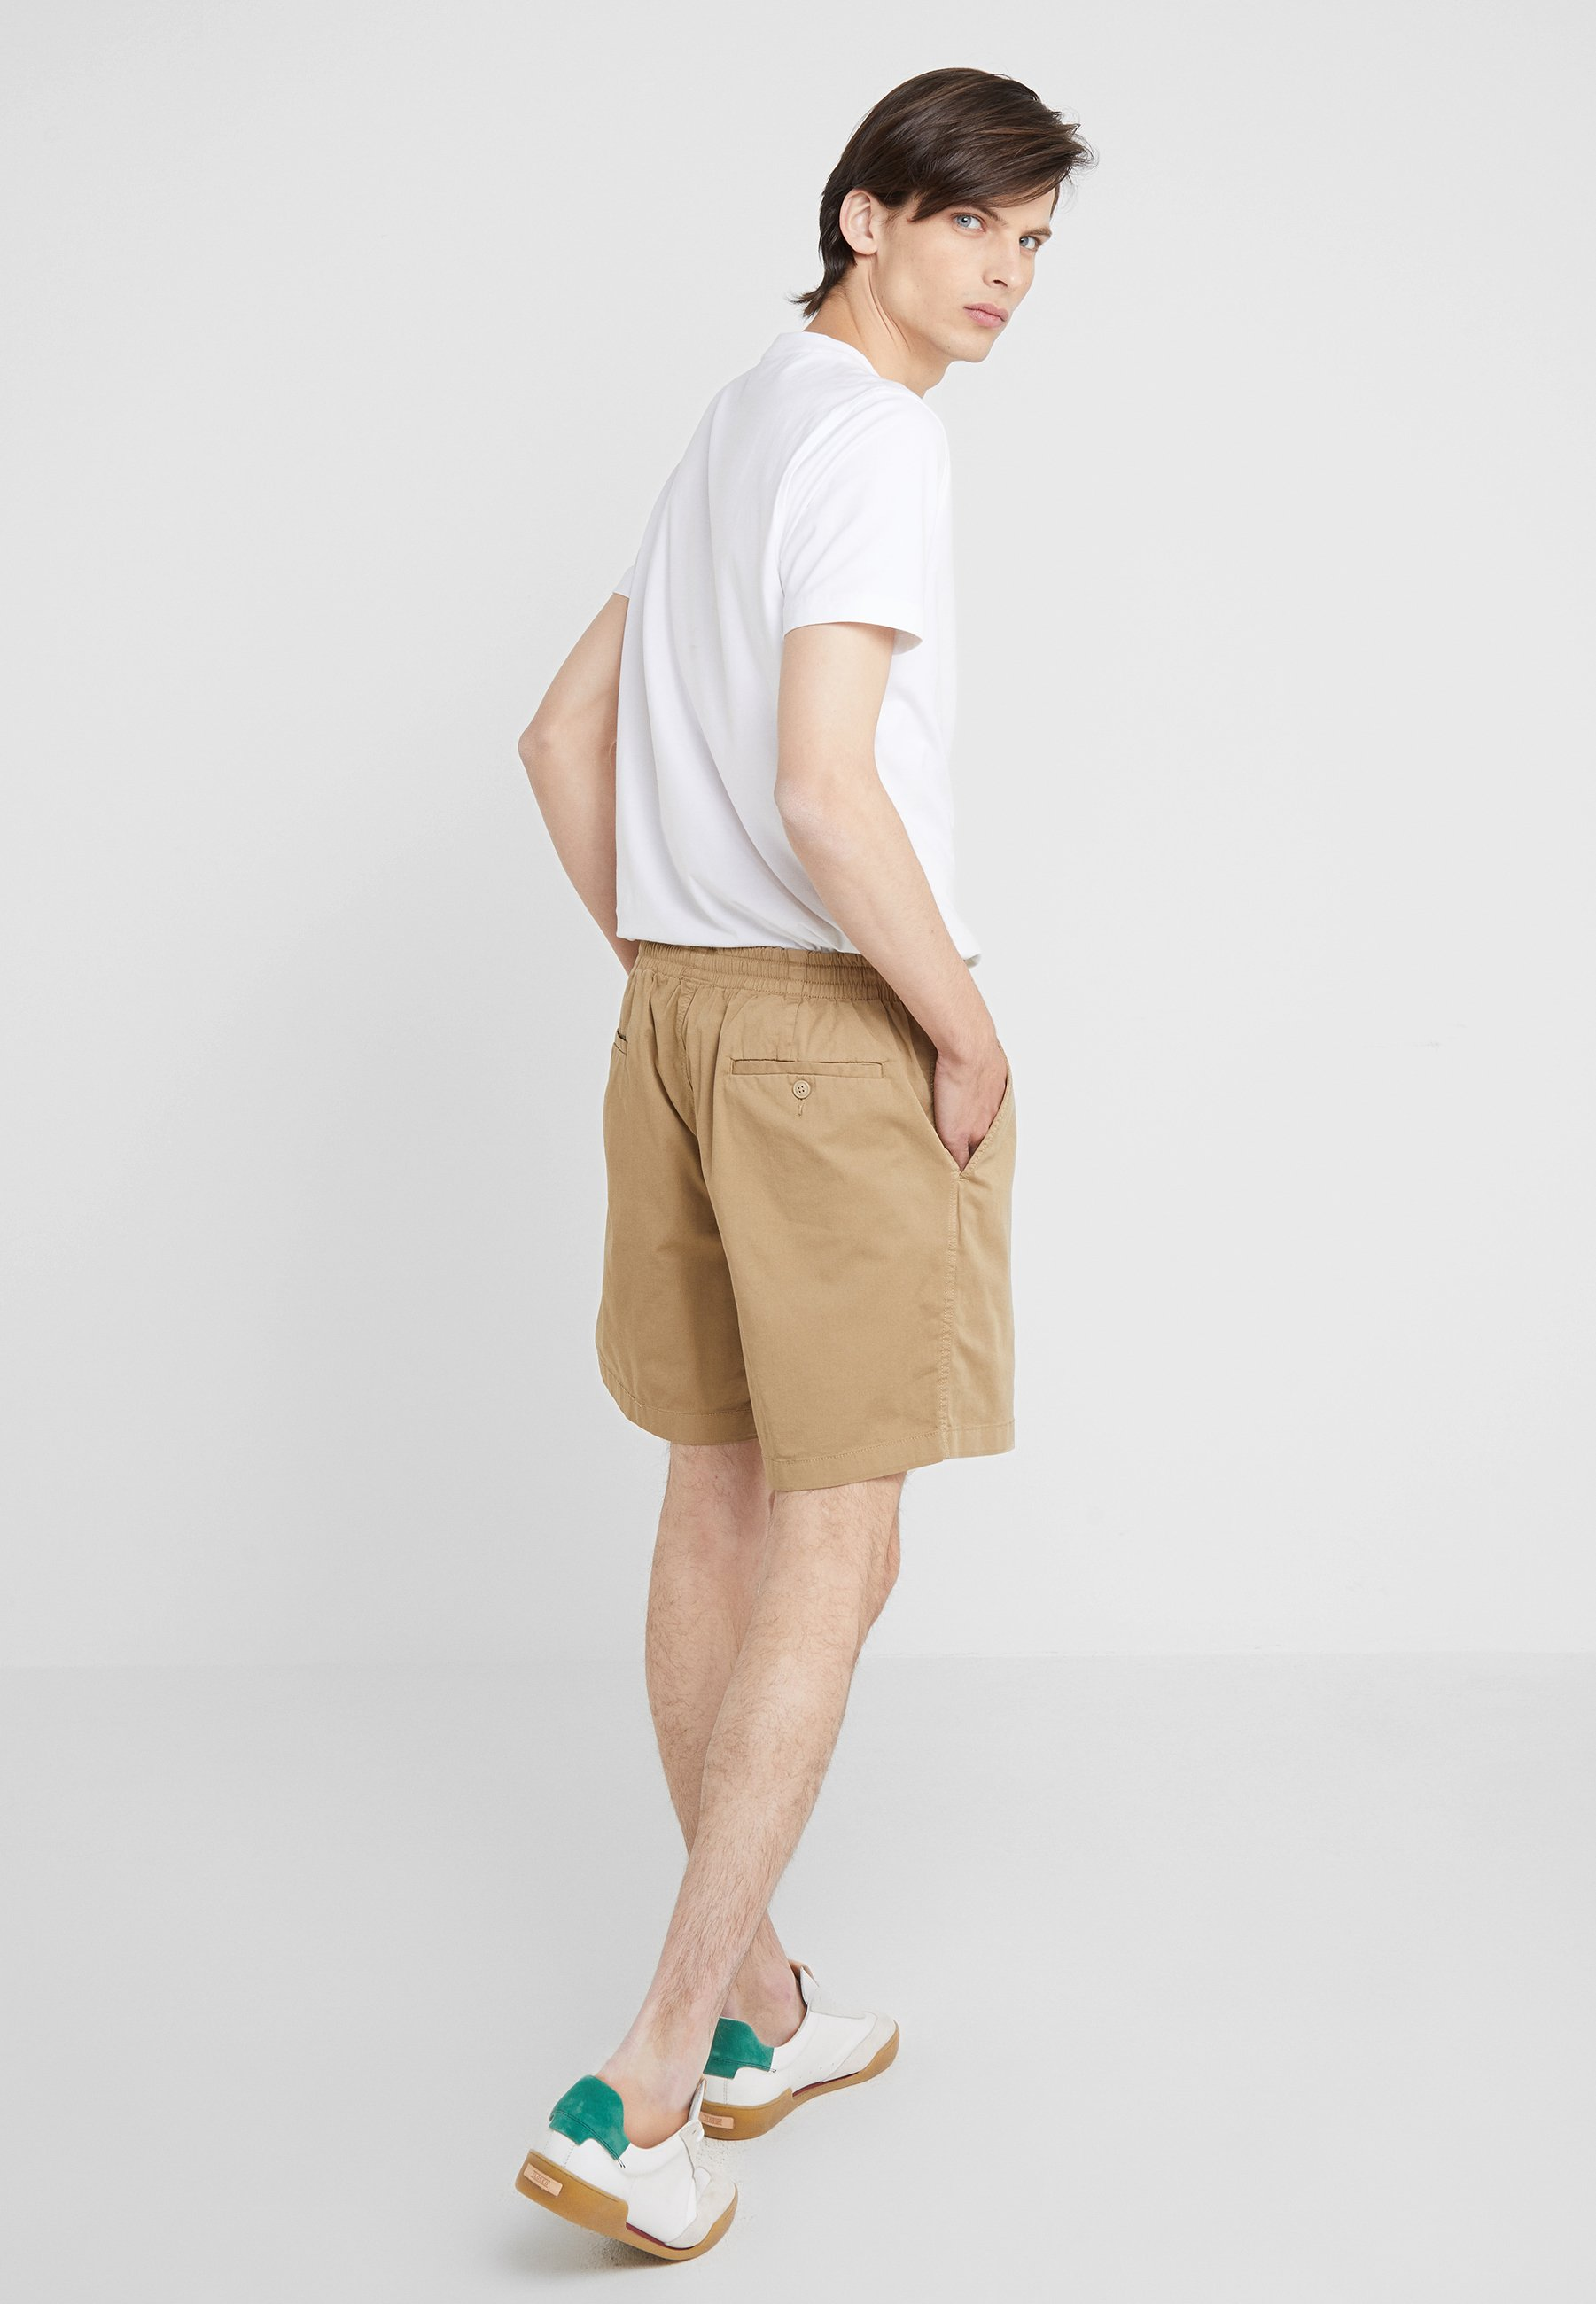 J.crew Dock Garment Dye Stretch - Shorts British Khaki